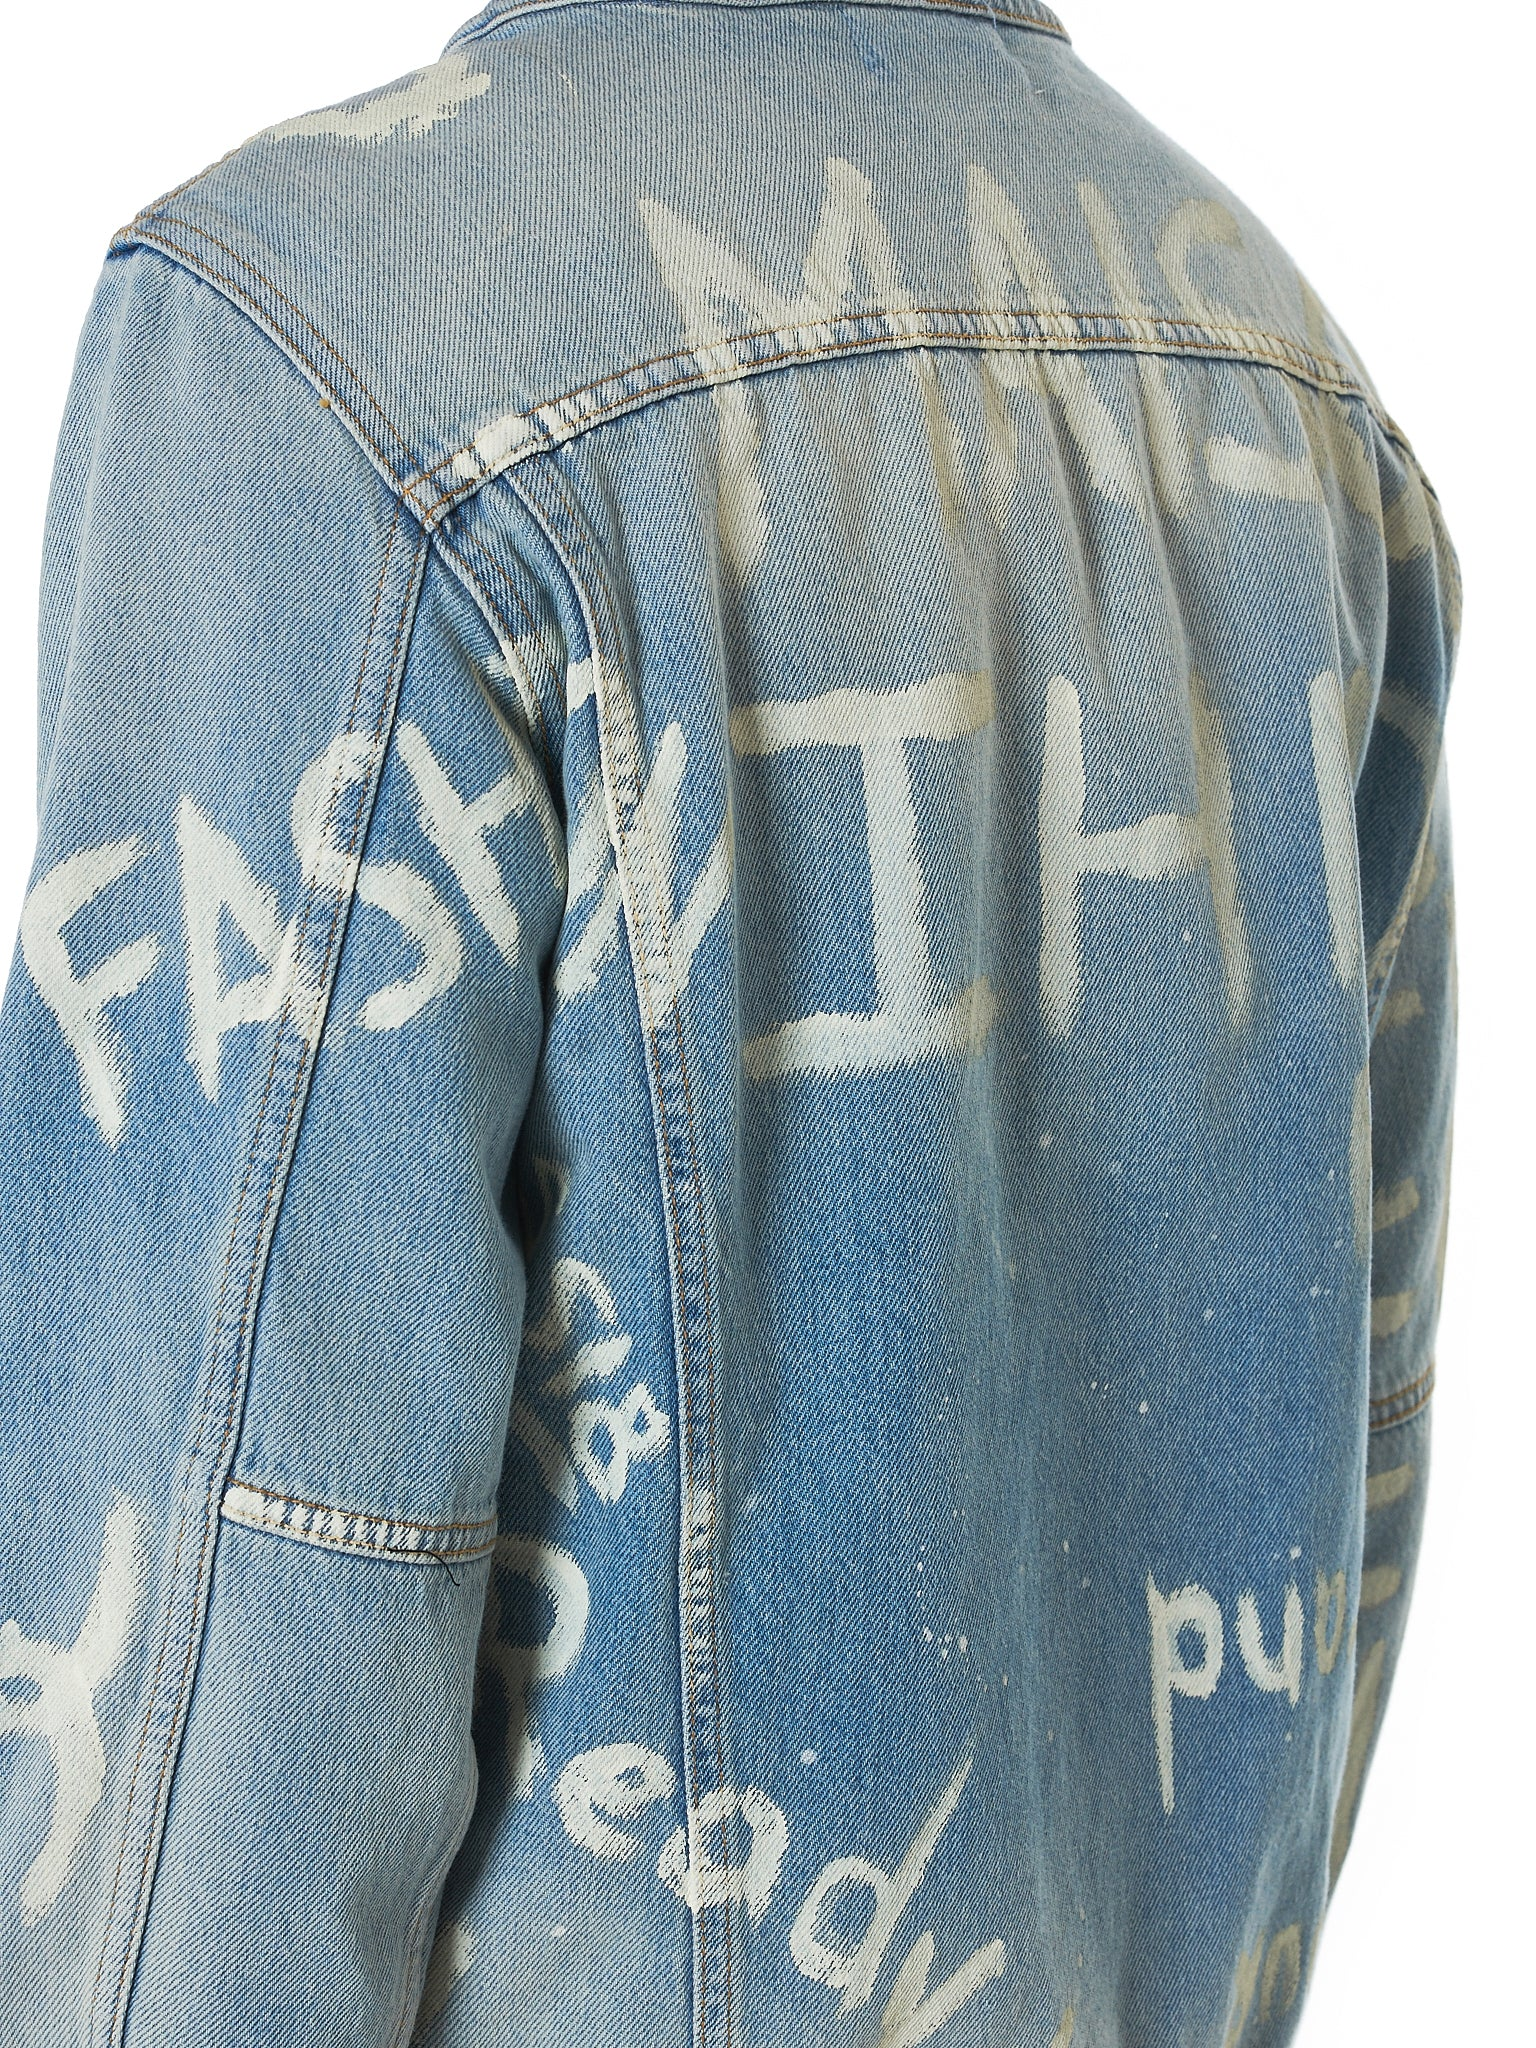 IH NOM UH NIT Denim Jacket - Hlorenzo Detail 2